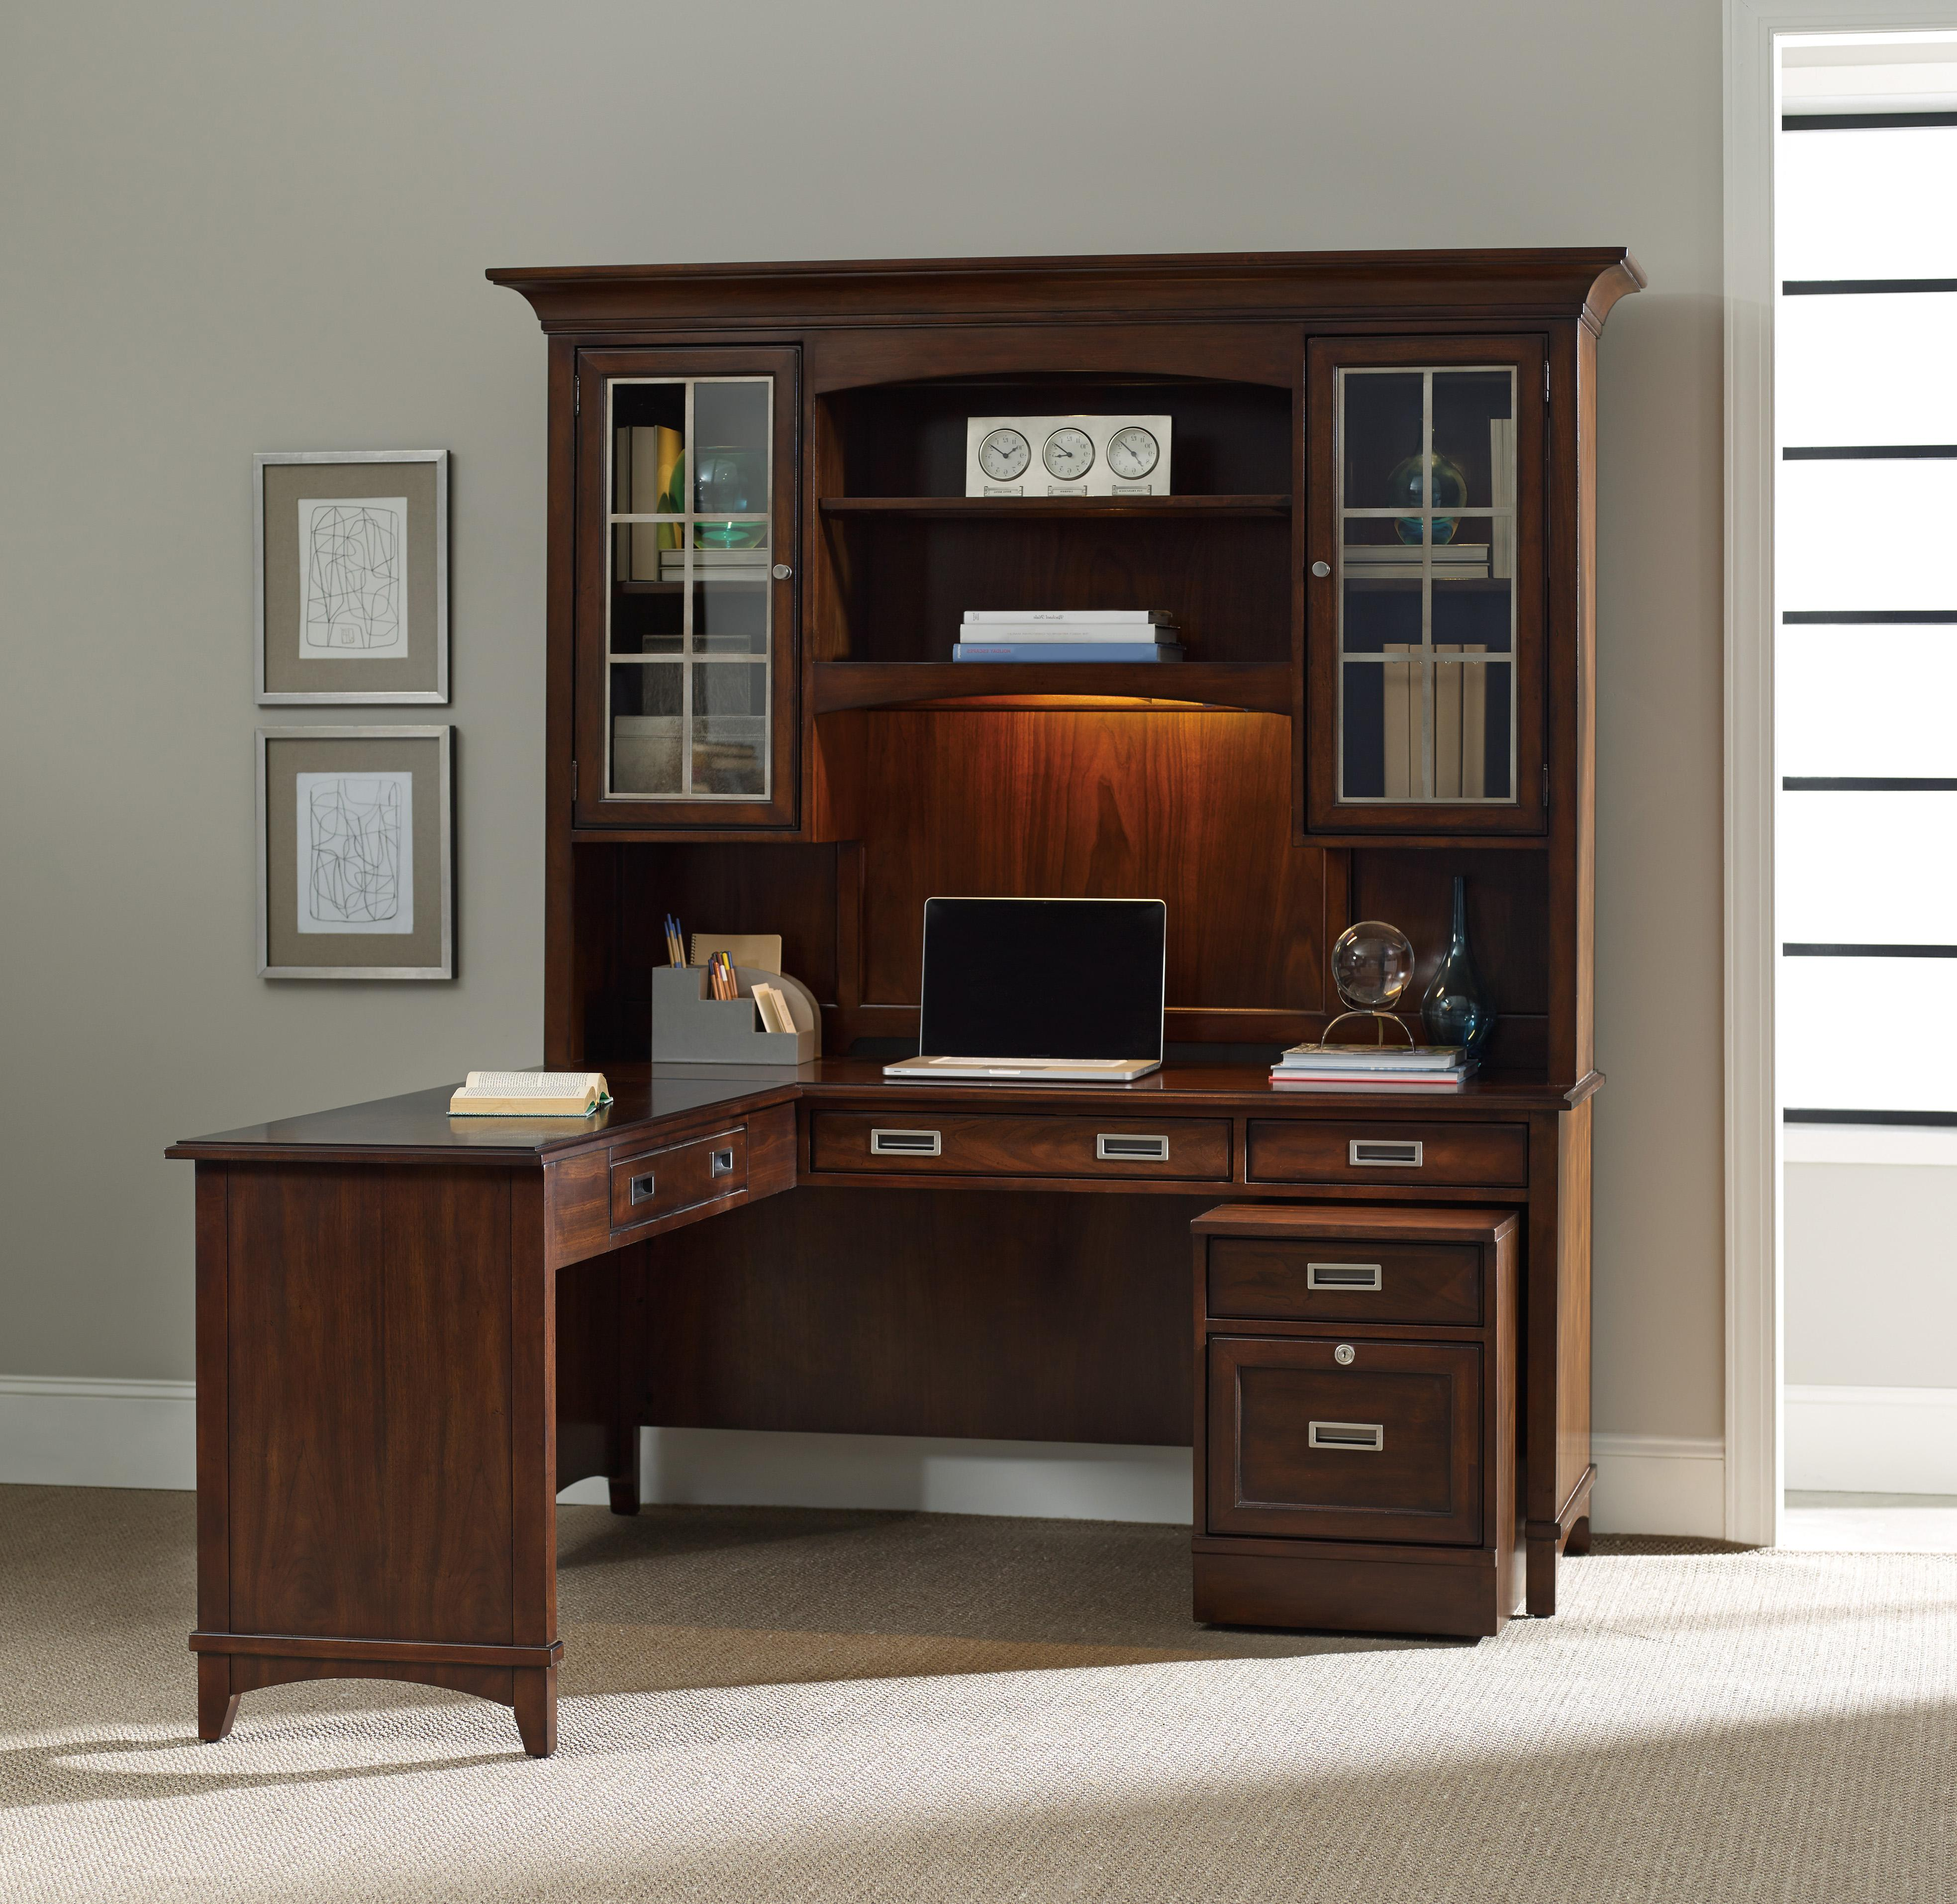 Desks With Drawers Latitude Walnut New Vintage Executive Desk With Filing Drawers By Hooker Furniture At Boulevard Home Furnishings